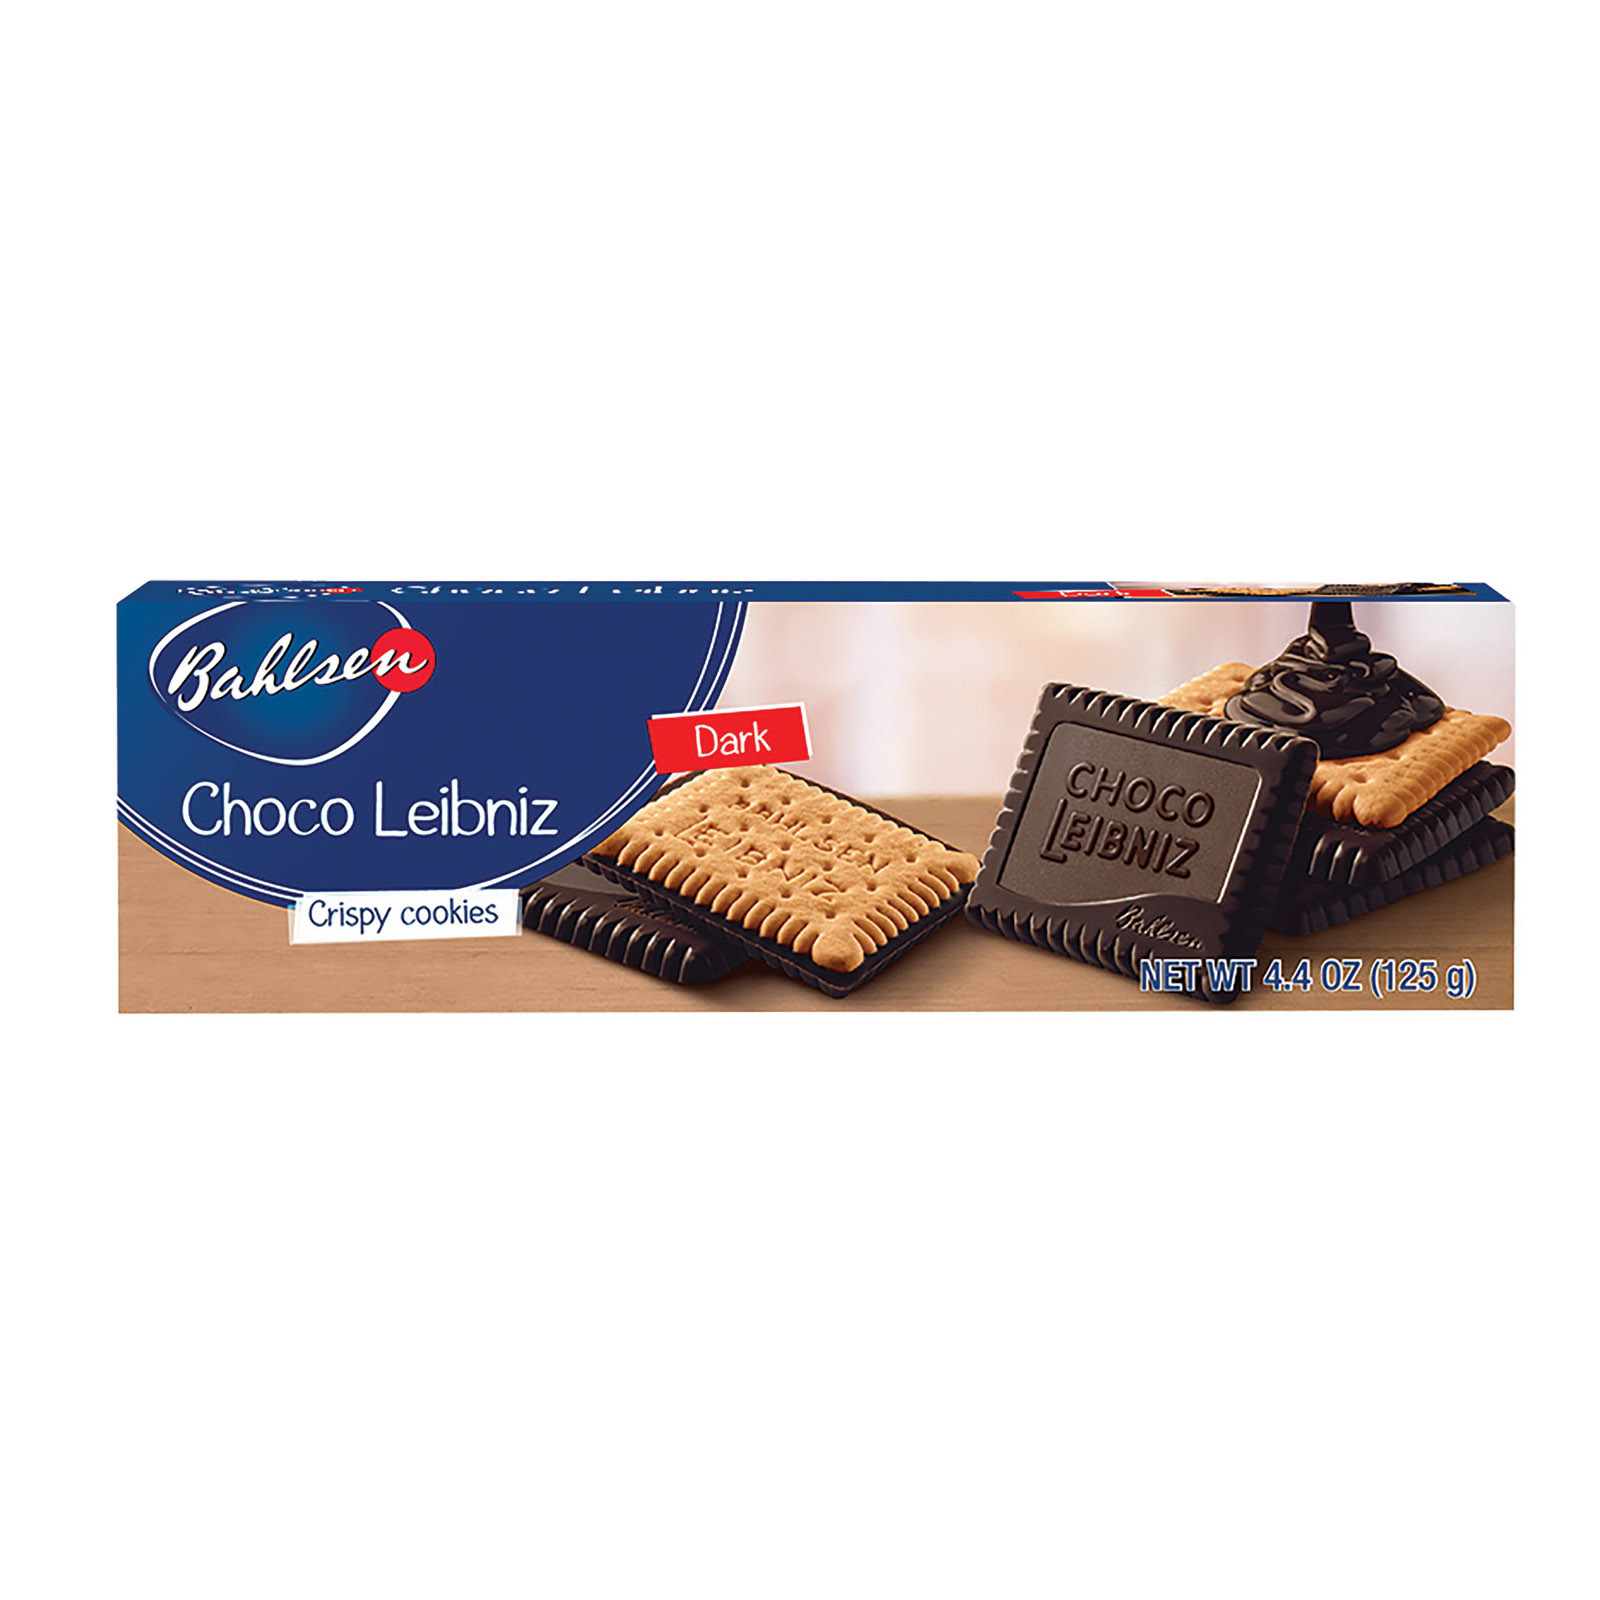 Bahlsen Choco Leibniz Butter and Dark Chocolate - 4.4 oz.